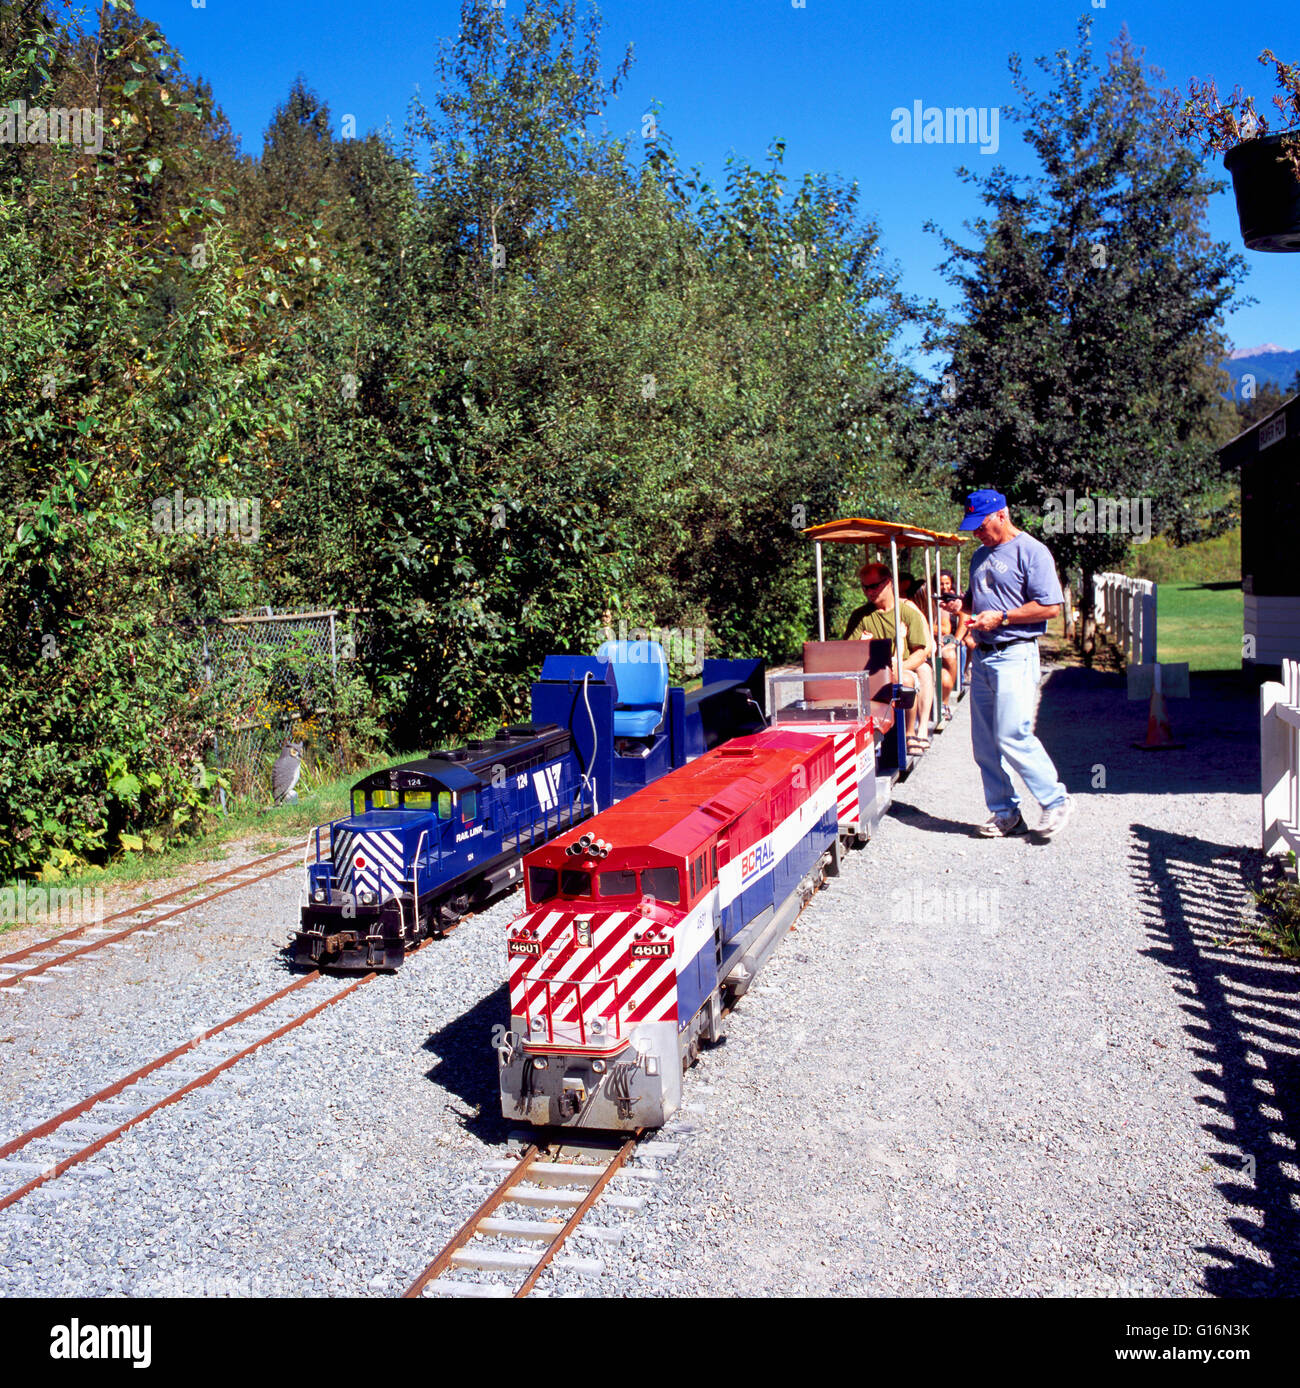 Miniature Train and Locomotive Engine at West Coast Railway Heritage Park, Squamish, BC, British Columbia, Canada - Stock Image